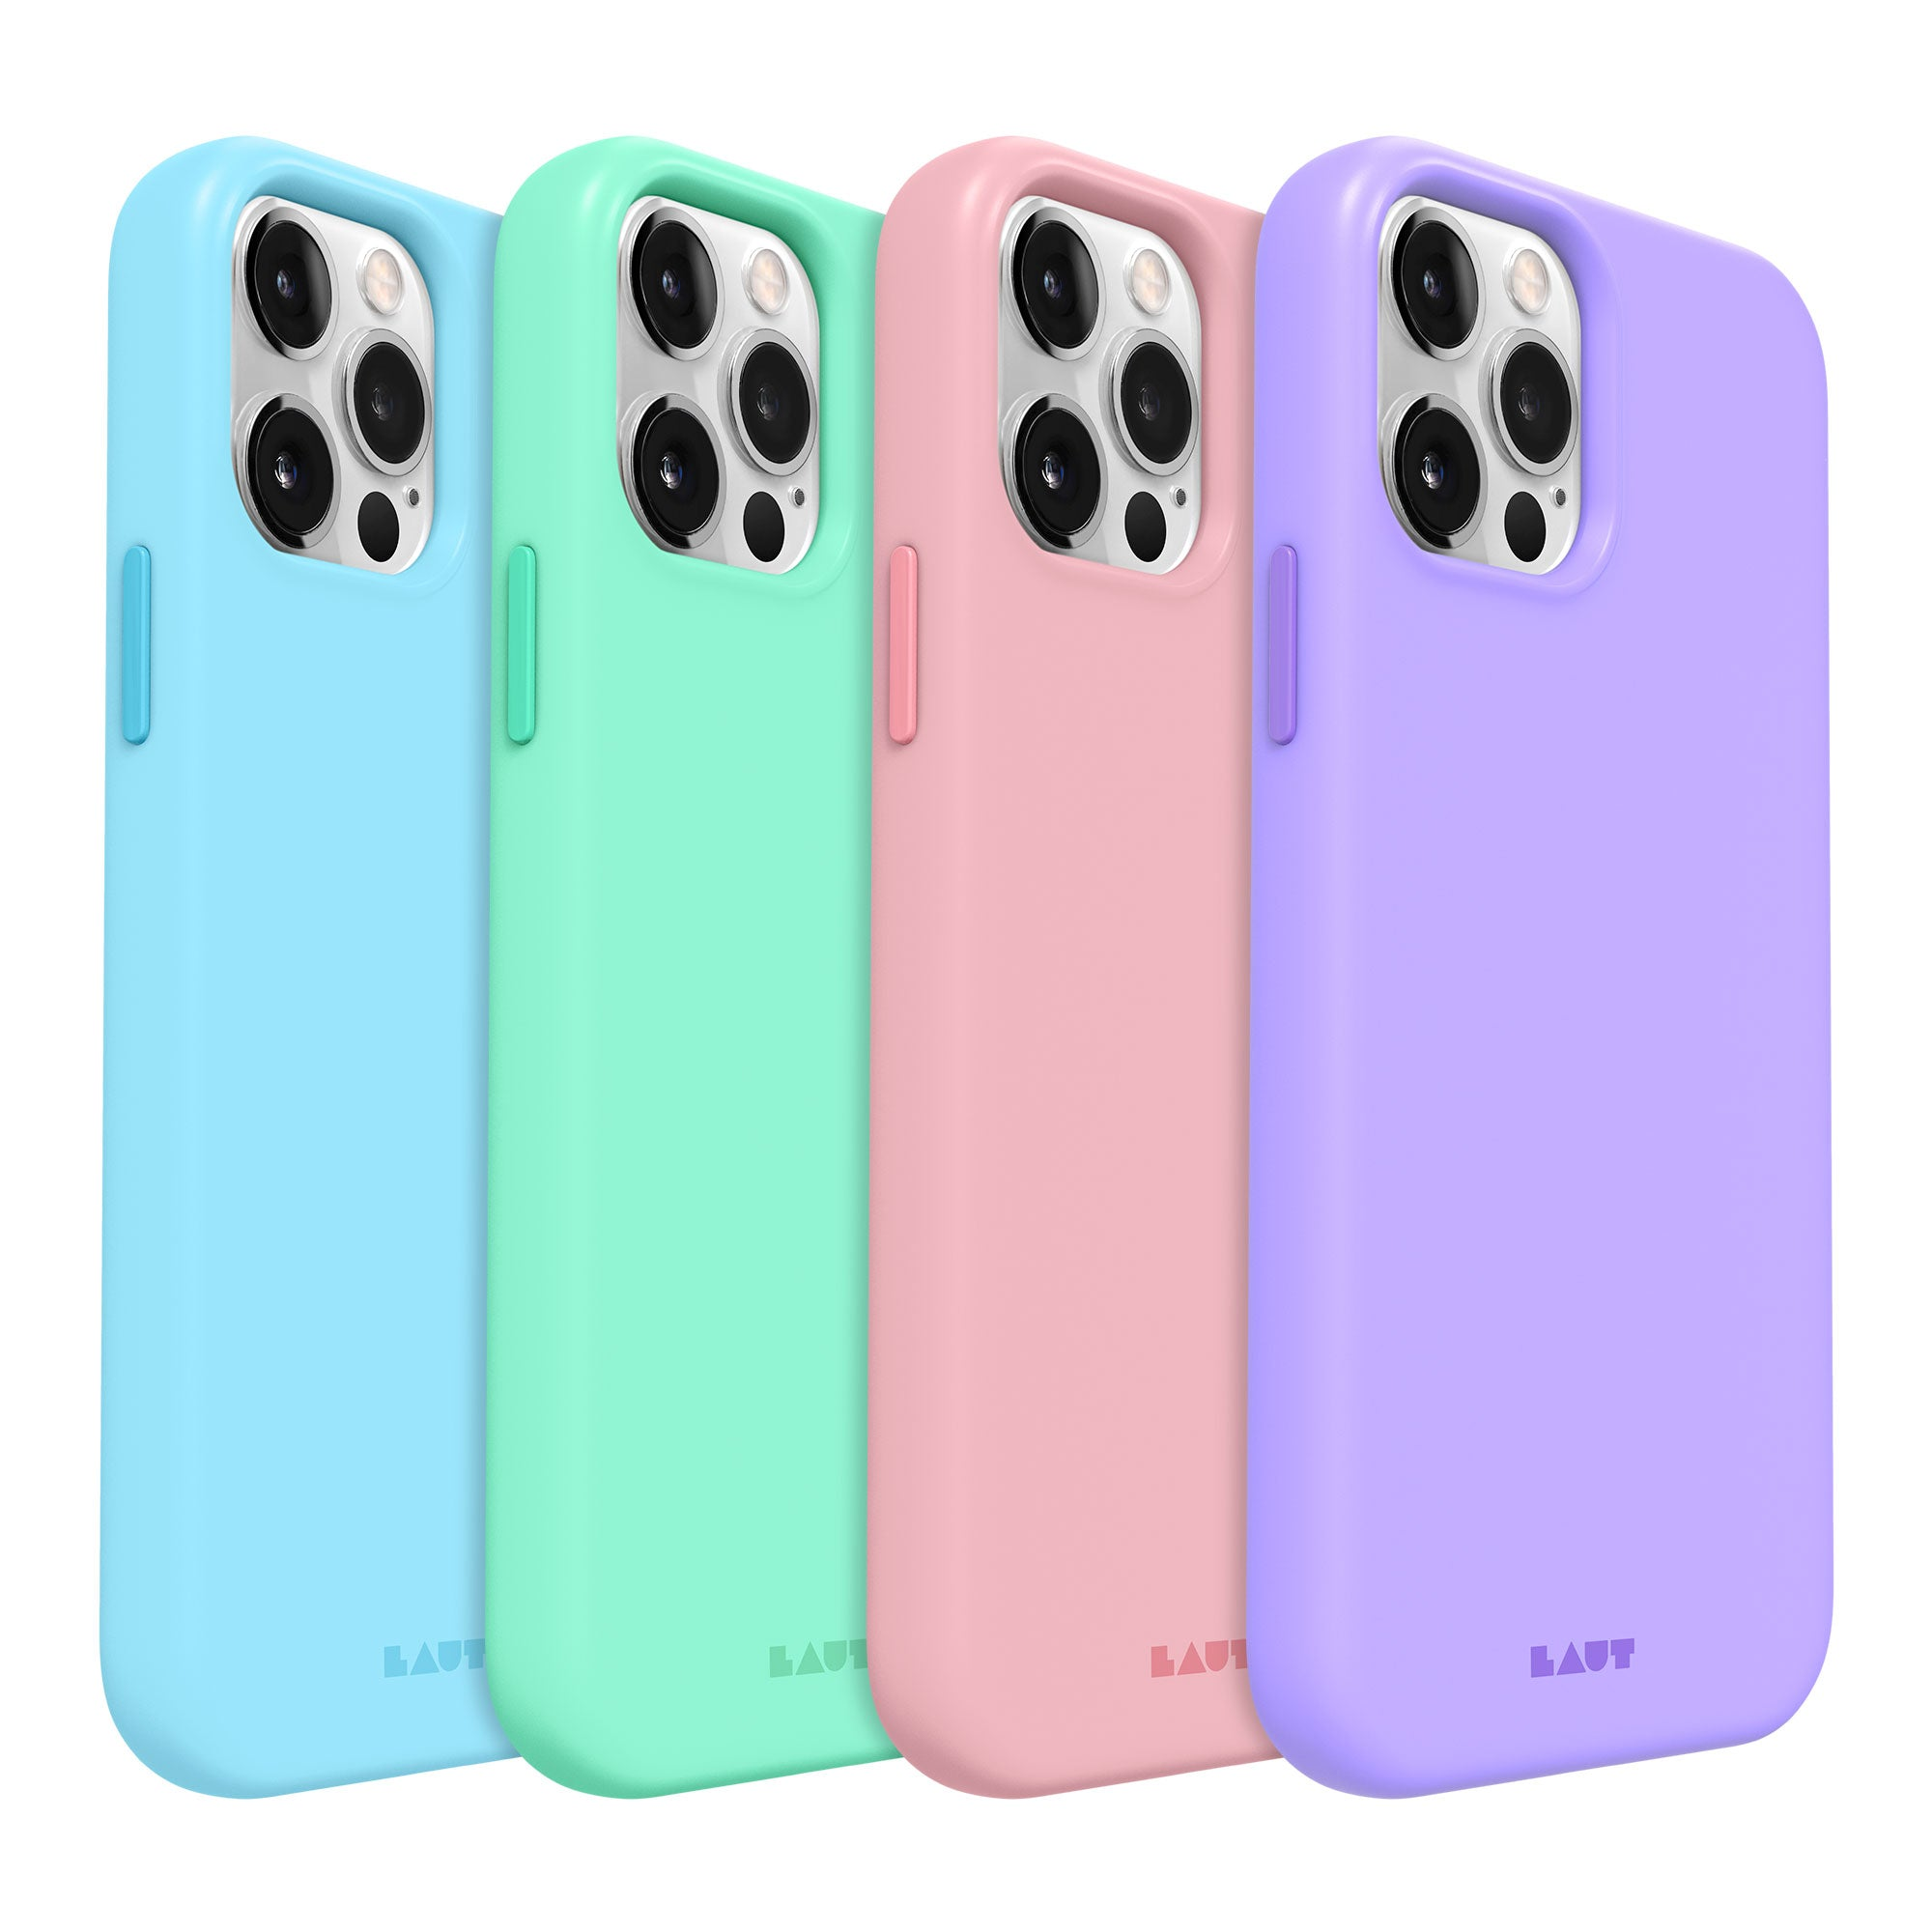 HUEX PASTELS case for iPhone 12 series